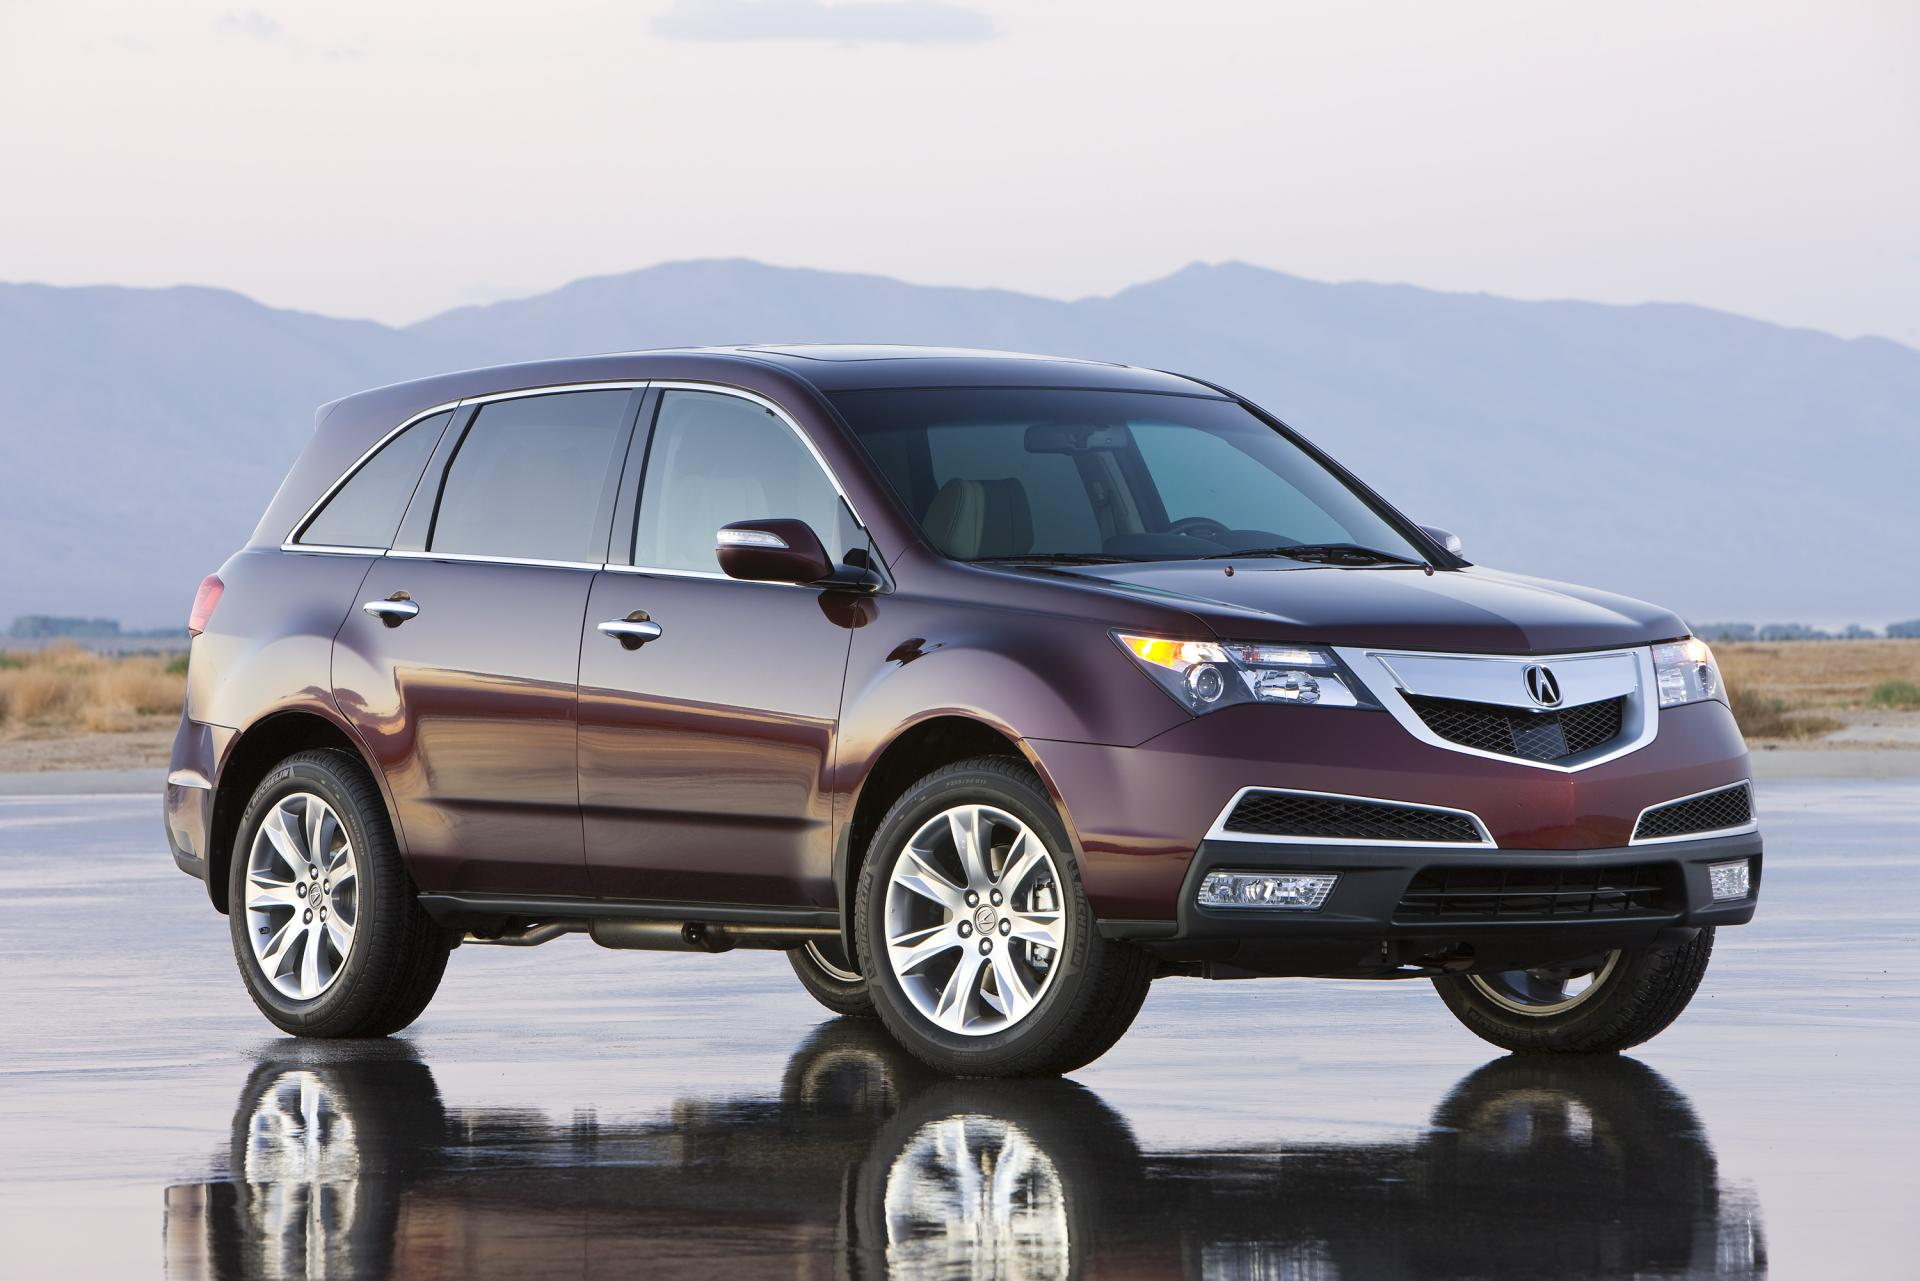 2012 acura mdx. Black Bedroom Furniture Sets. Home Design Ideas